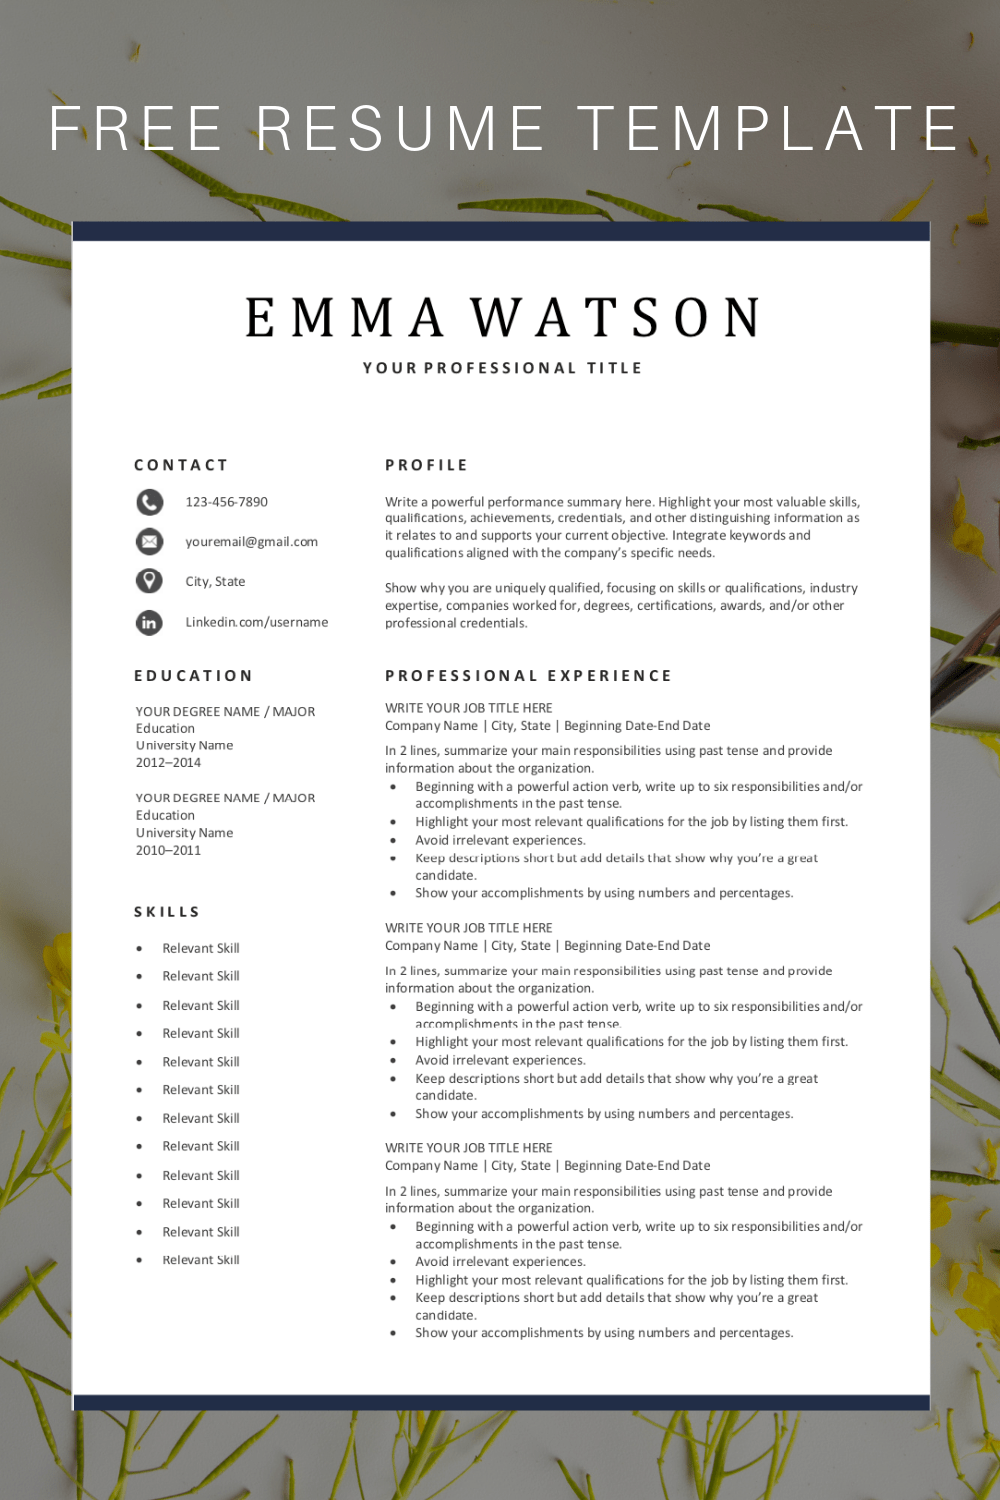 Are you looking for a free editable resume template Sign up for our job search tips and this template for free You can easily adjust it in Microsoft Word resumetemplate resume jobsearch jobhunt freeresume